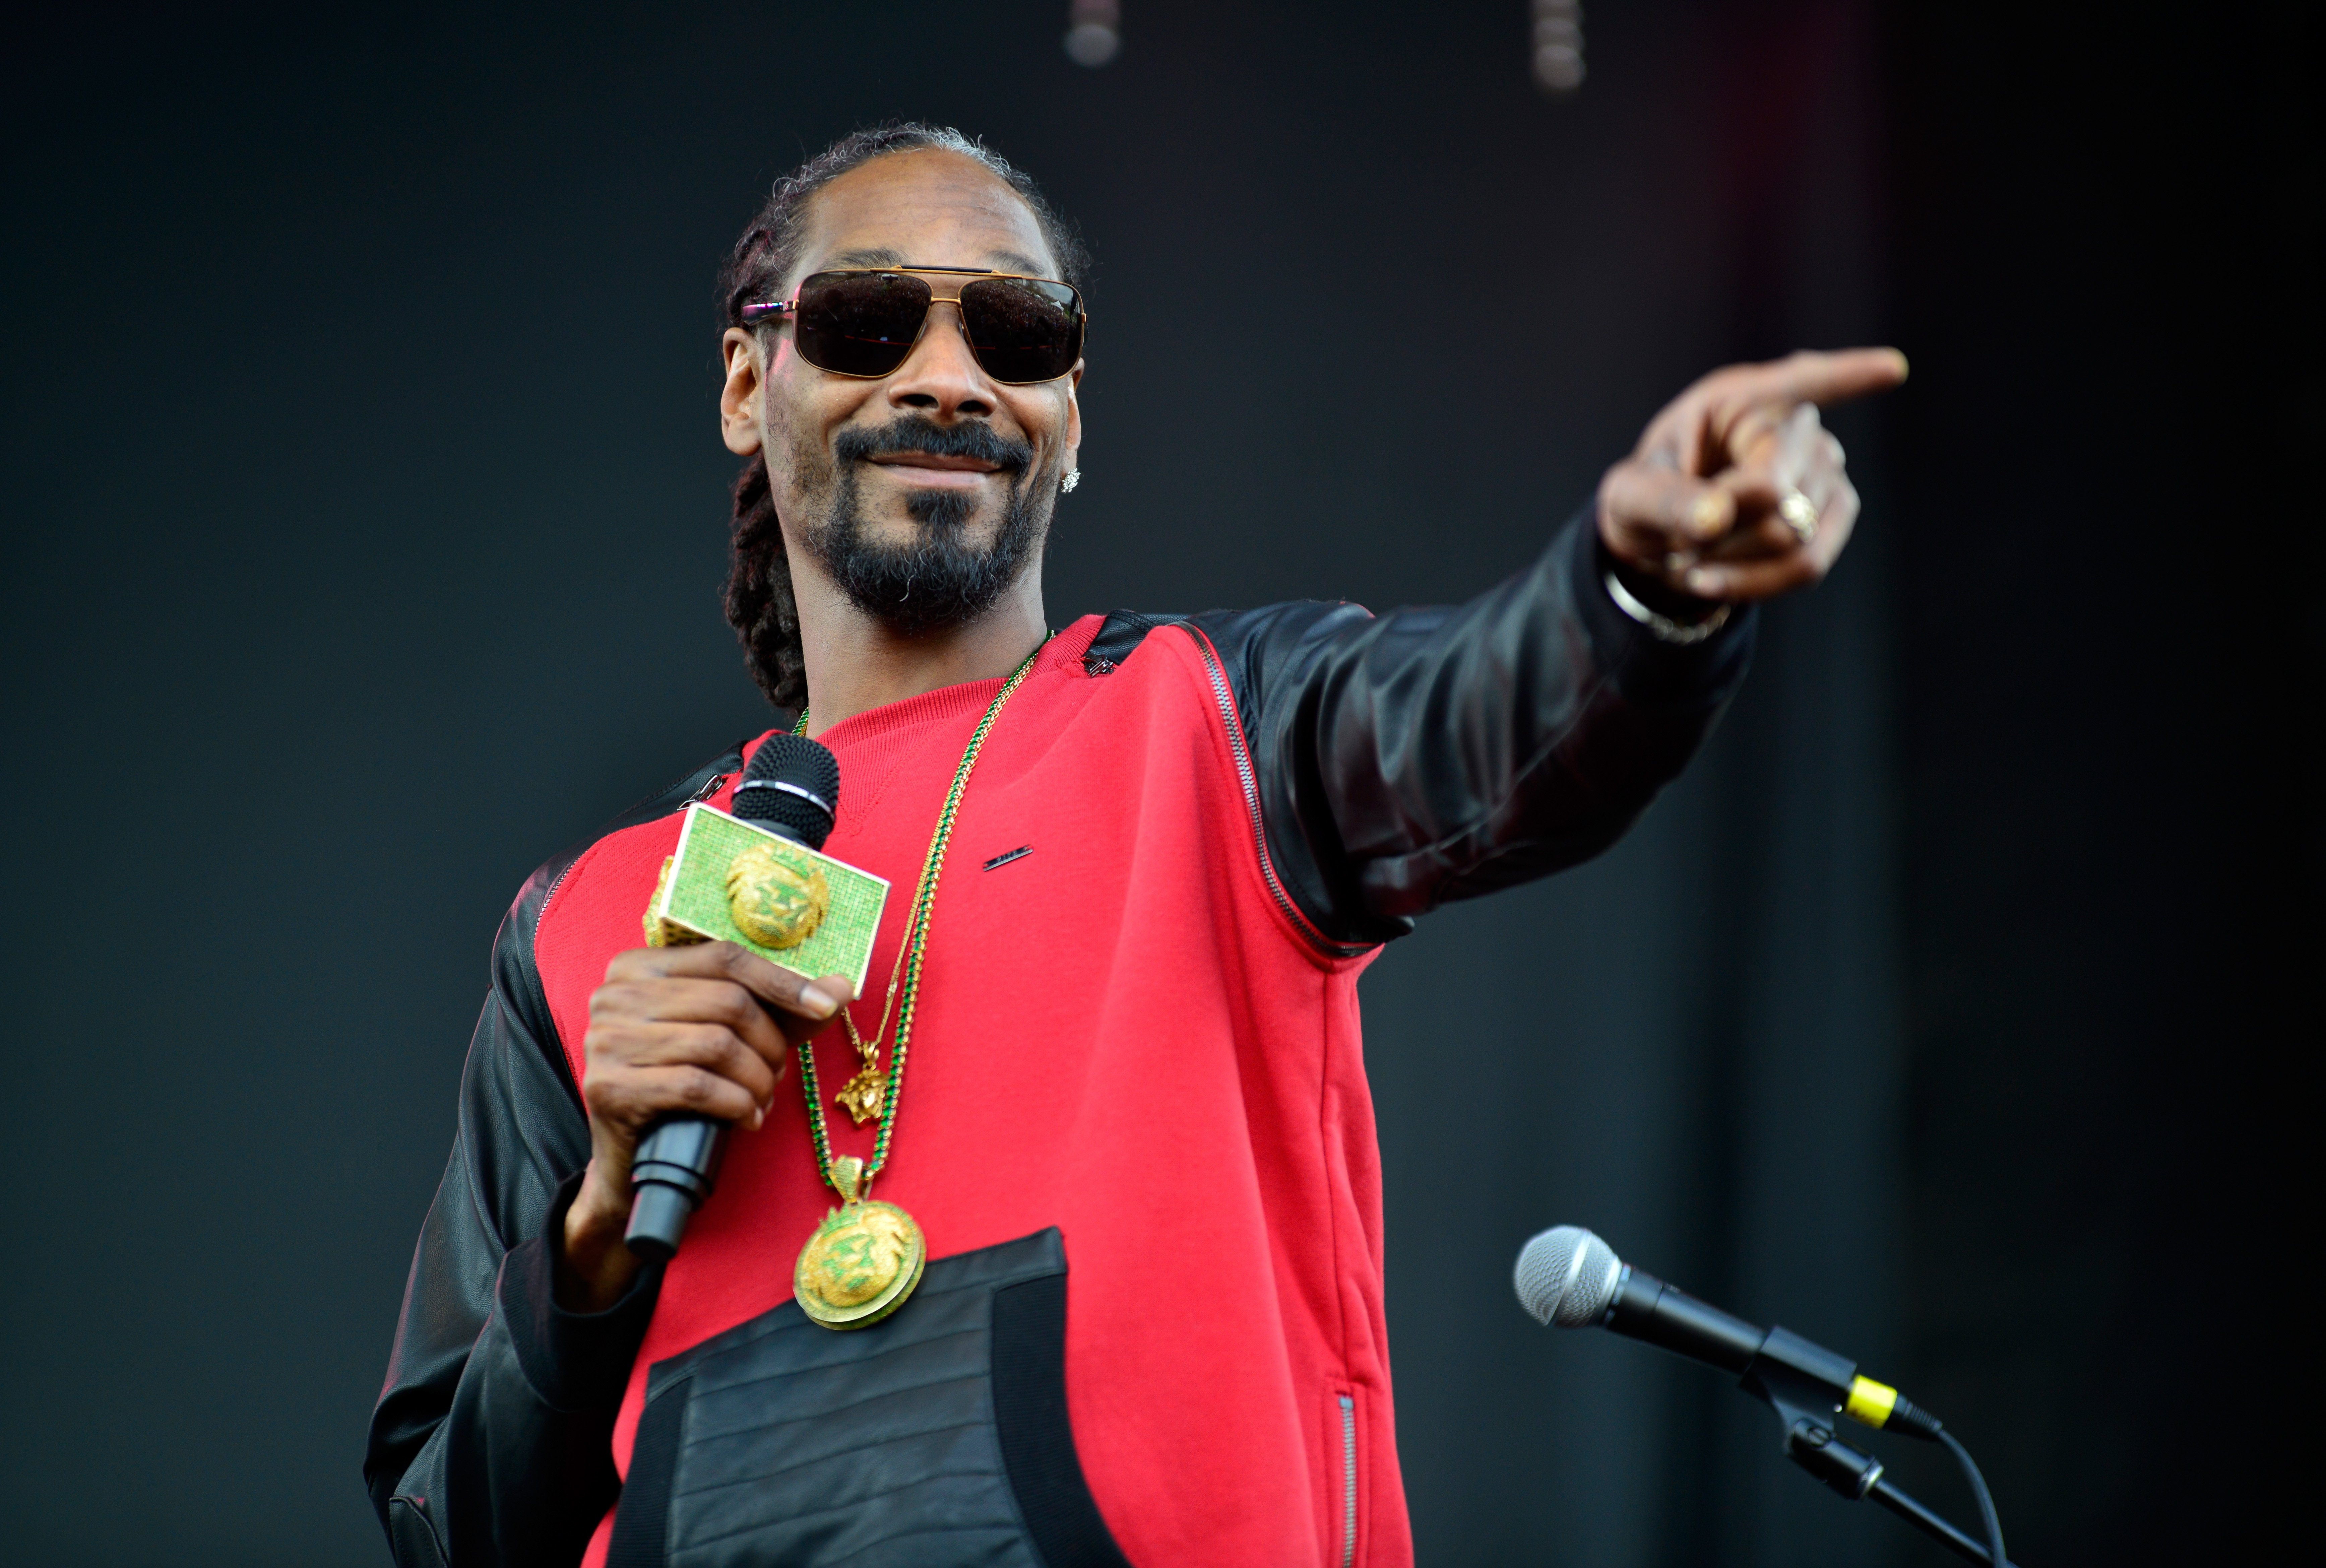 Snoop Dogg at the SXSW Music, Film + Interactive Festival on March 15, 2014 in Texas   Photo: Getty Images